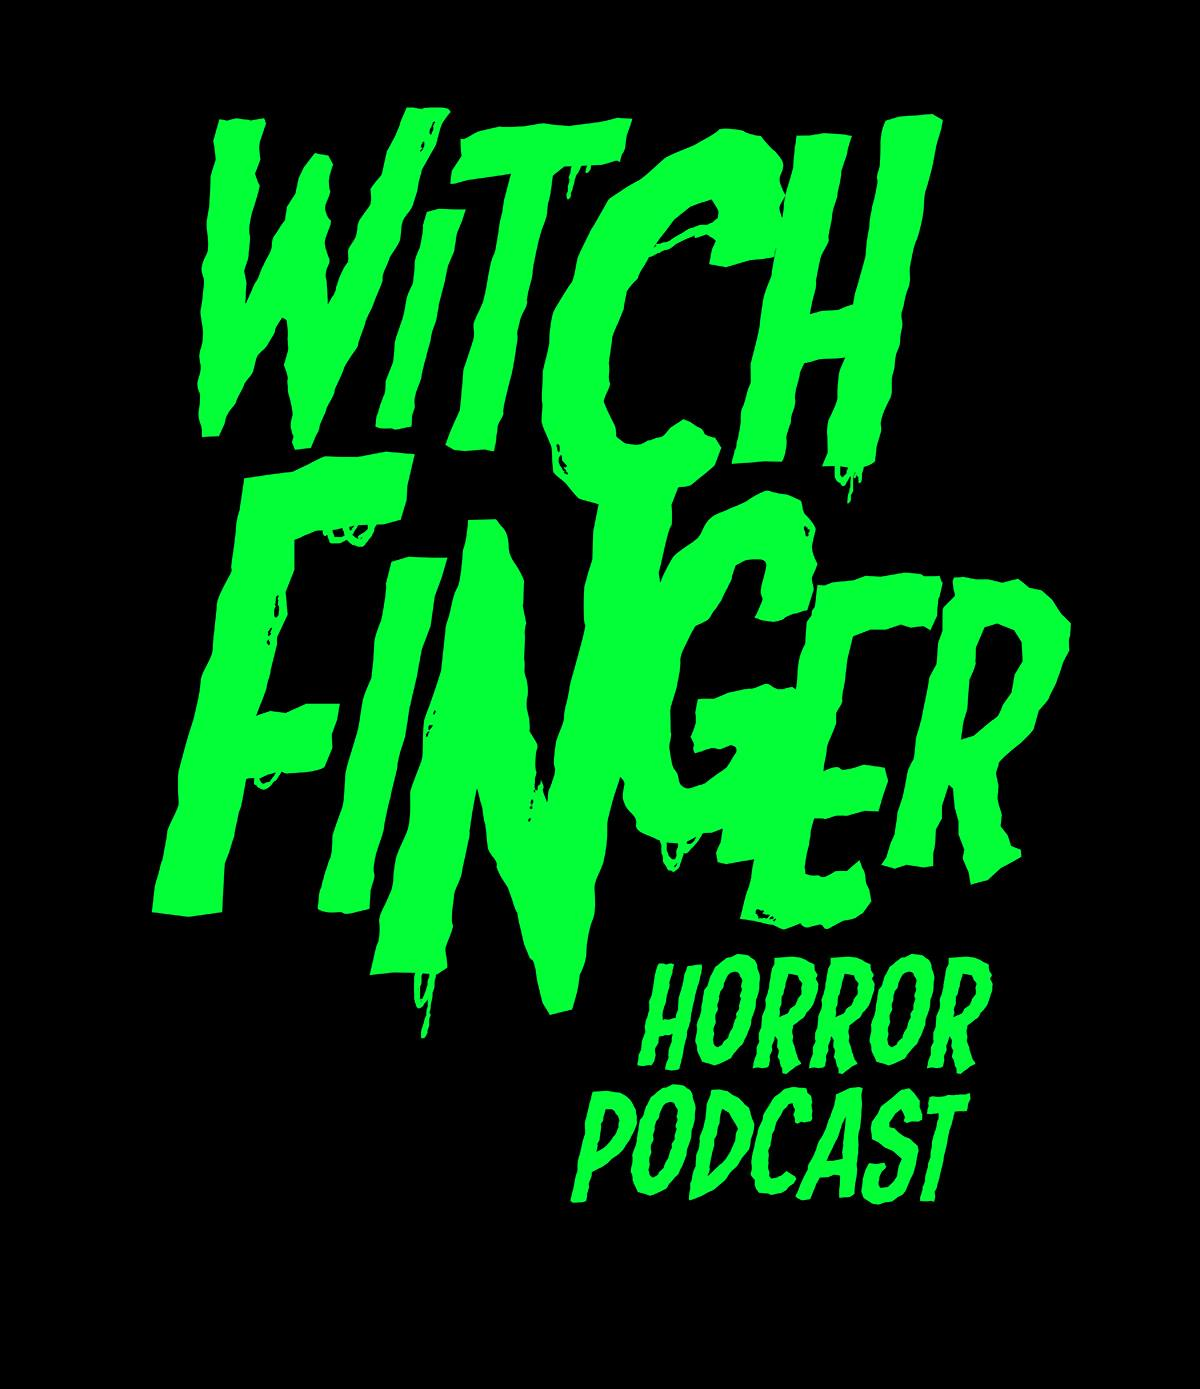 Witch Finger Horror Podcast